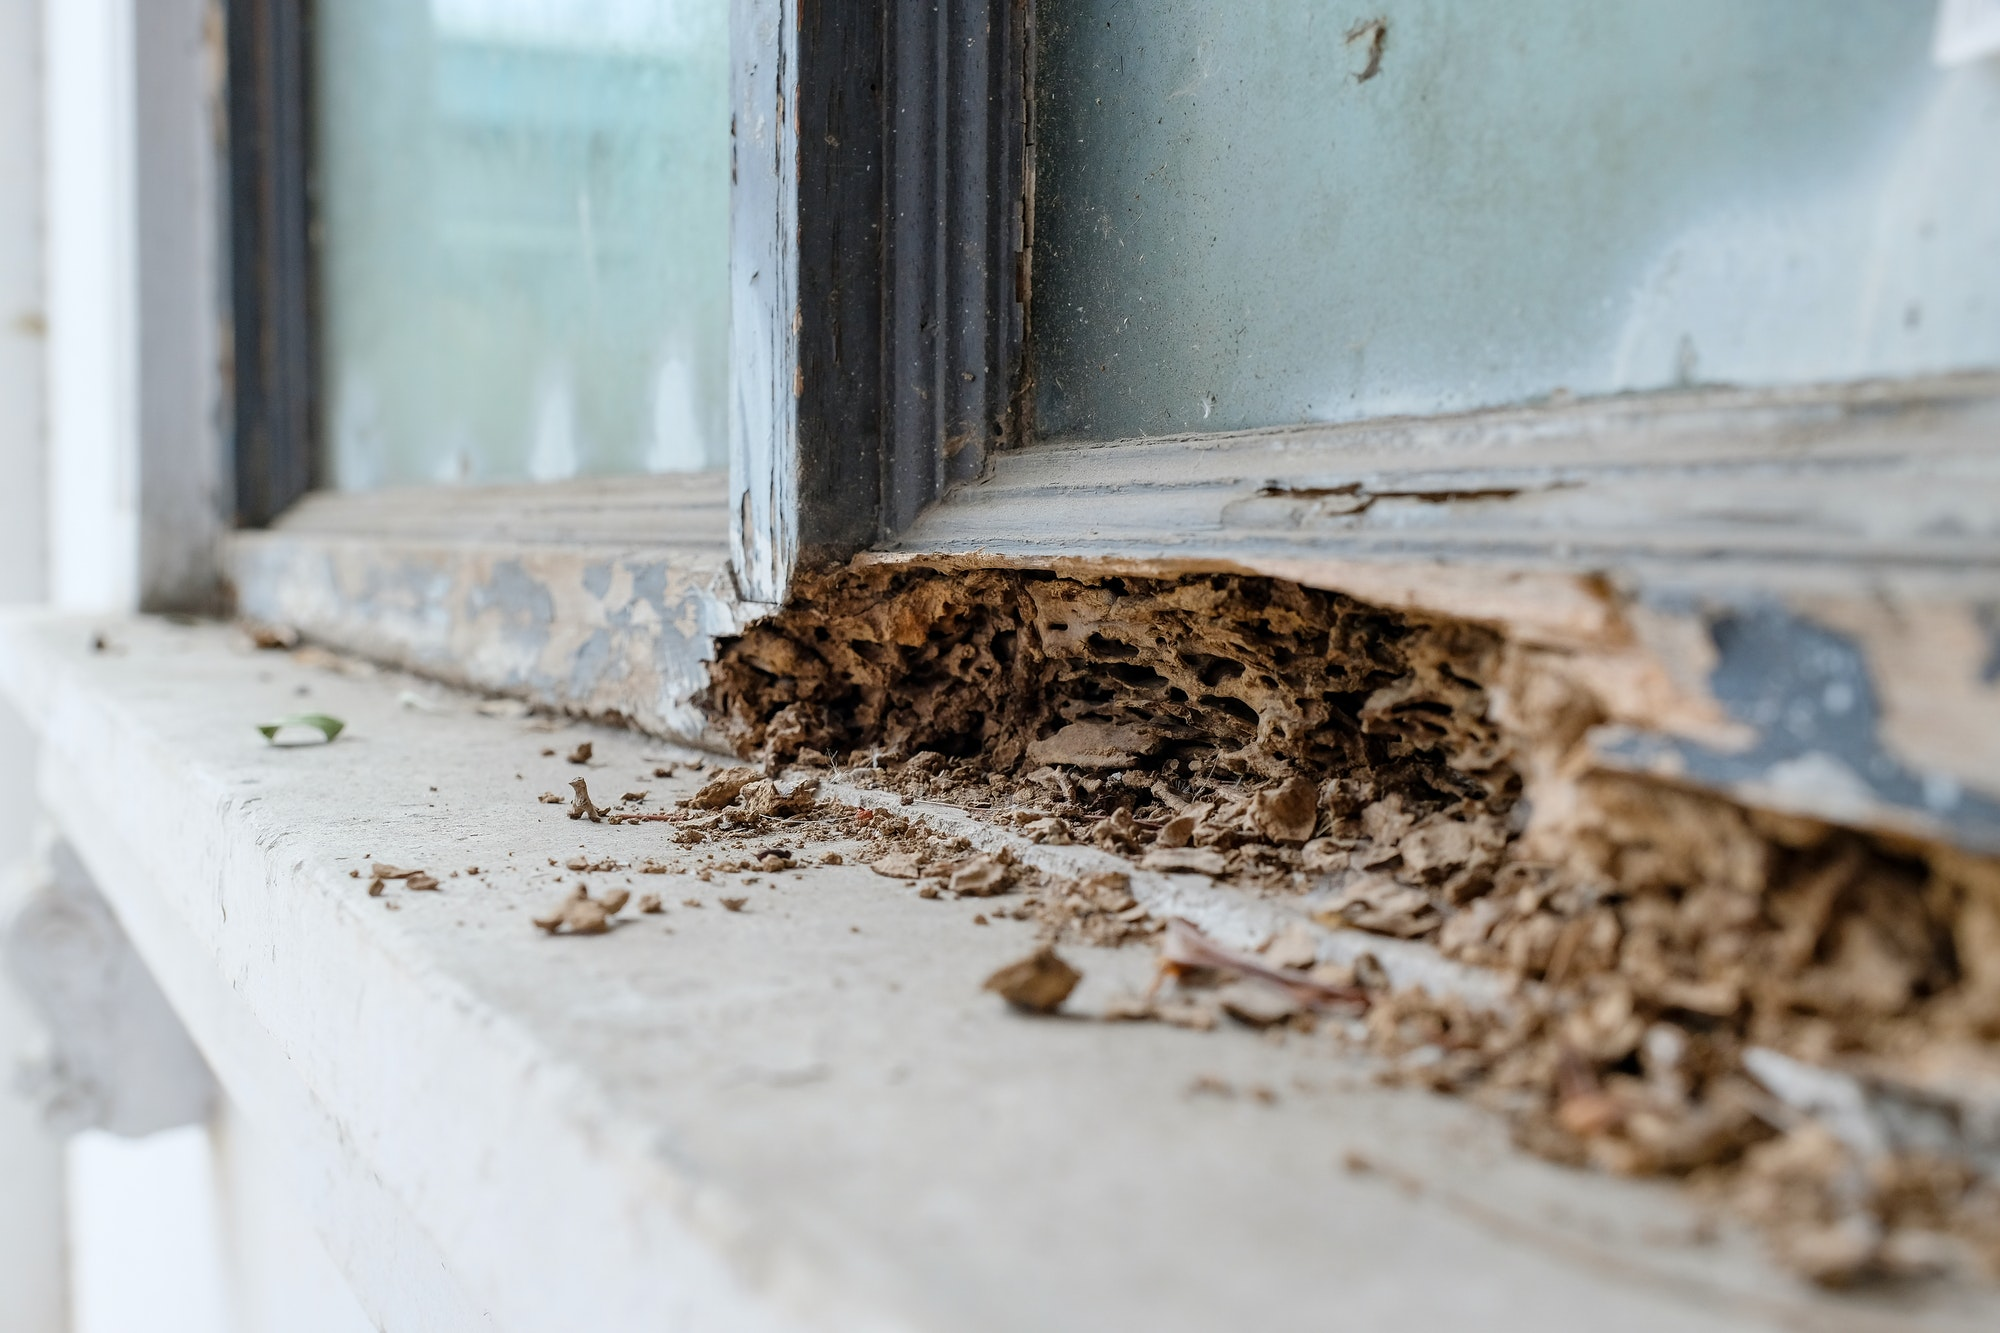 The lower portion of an outdoor window and ledge, with severe termite damage of the wood window frame.